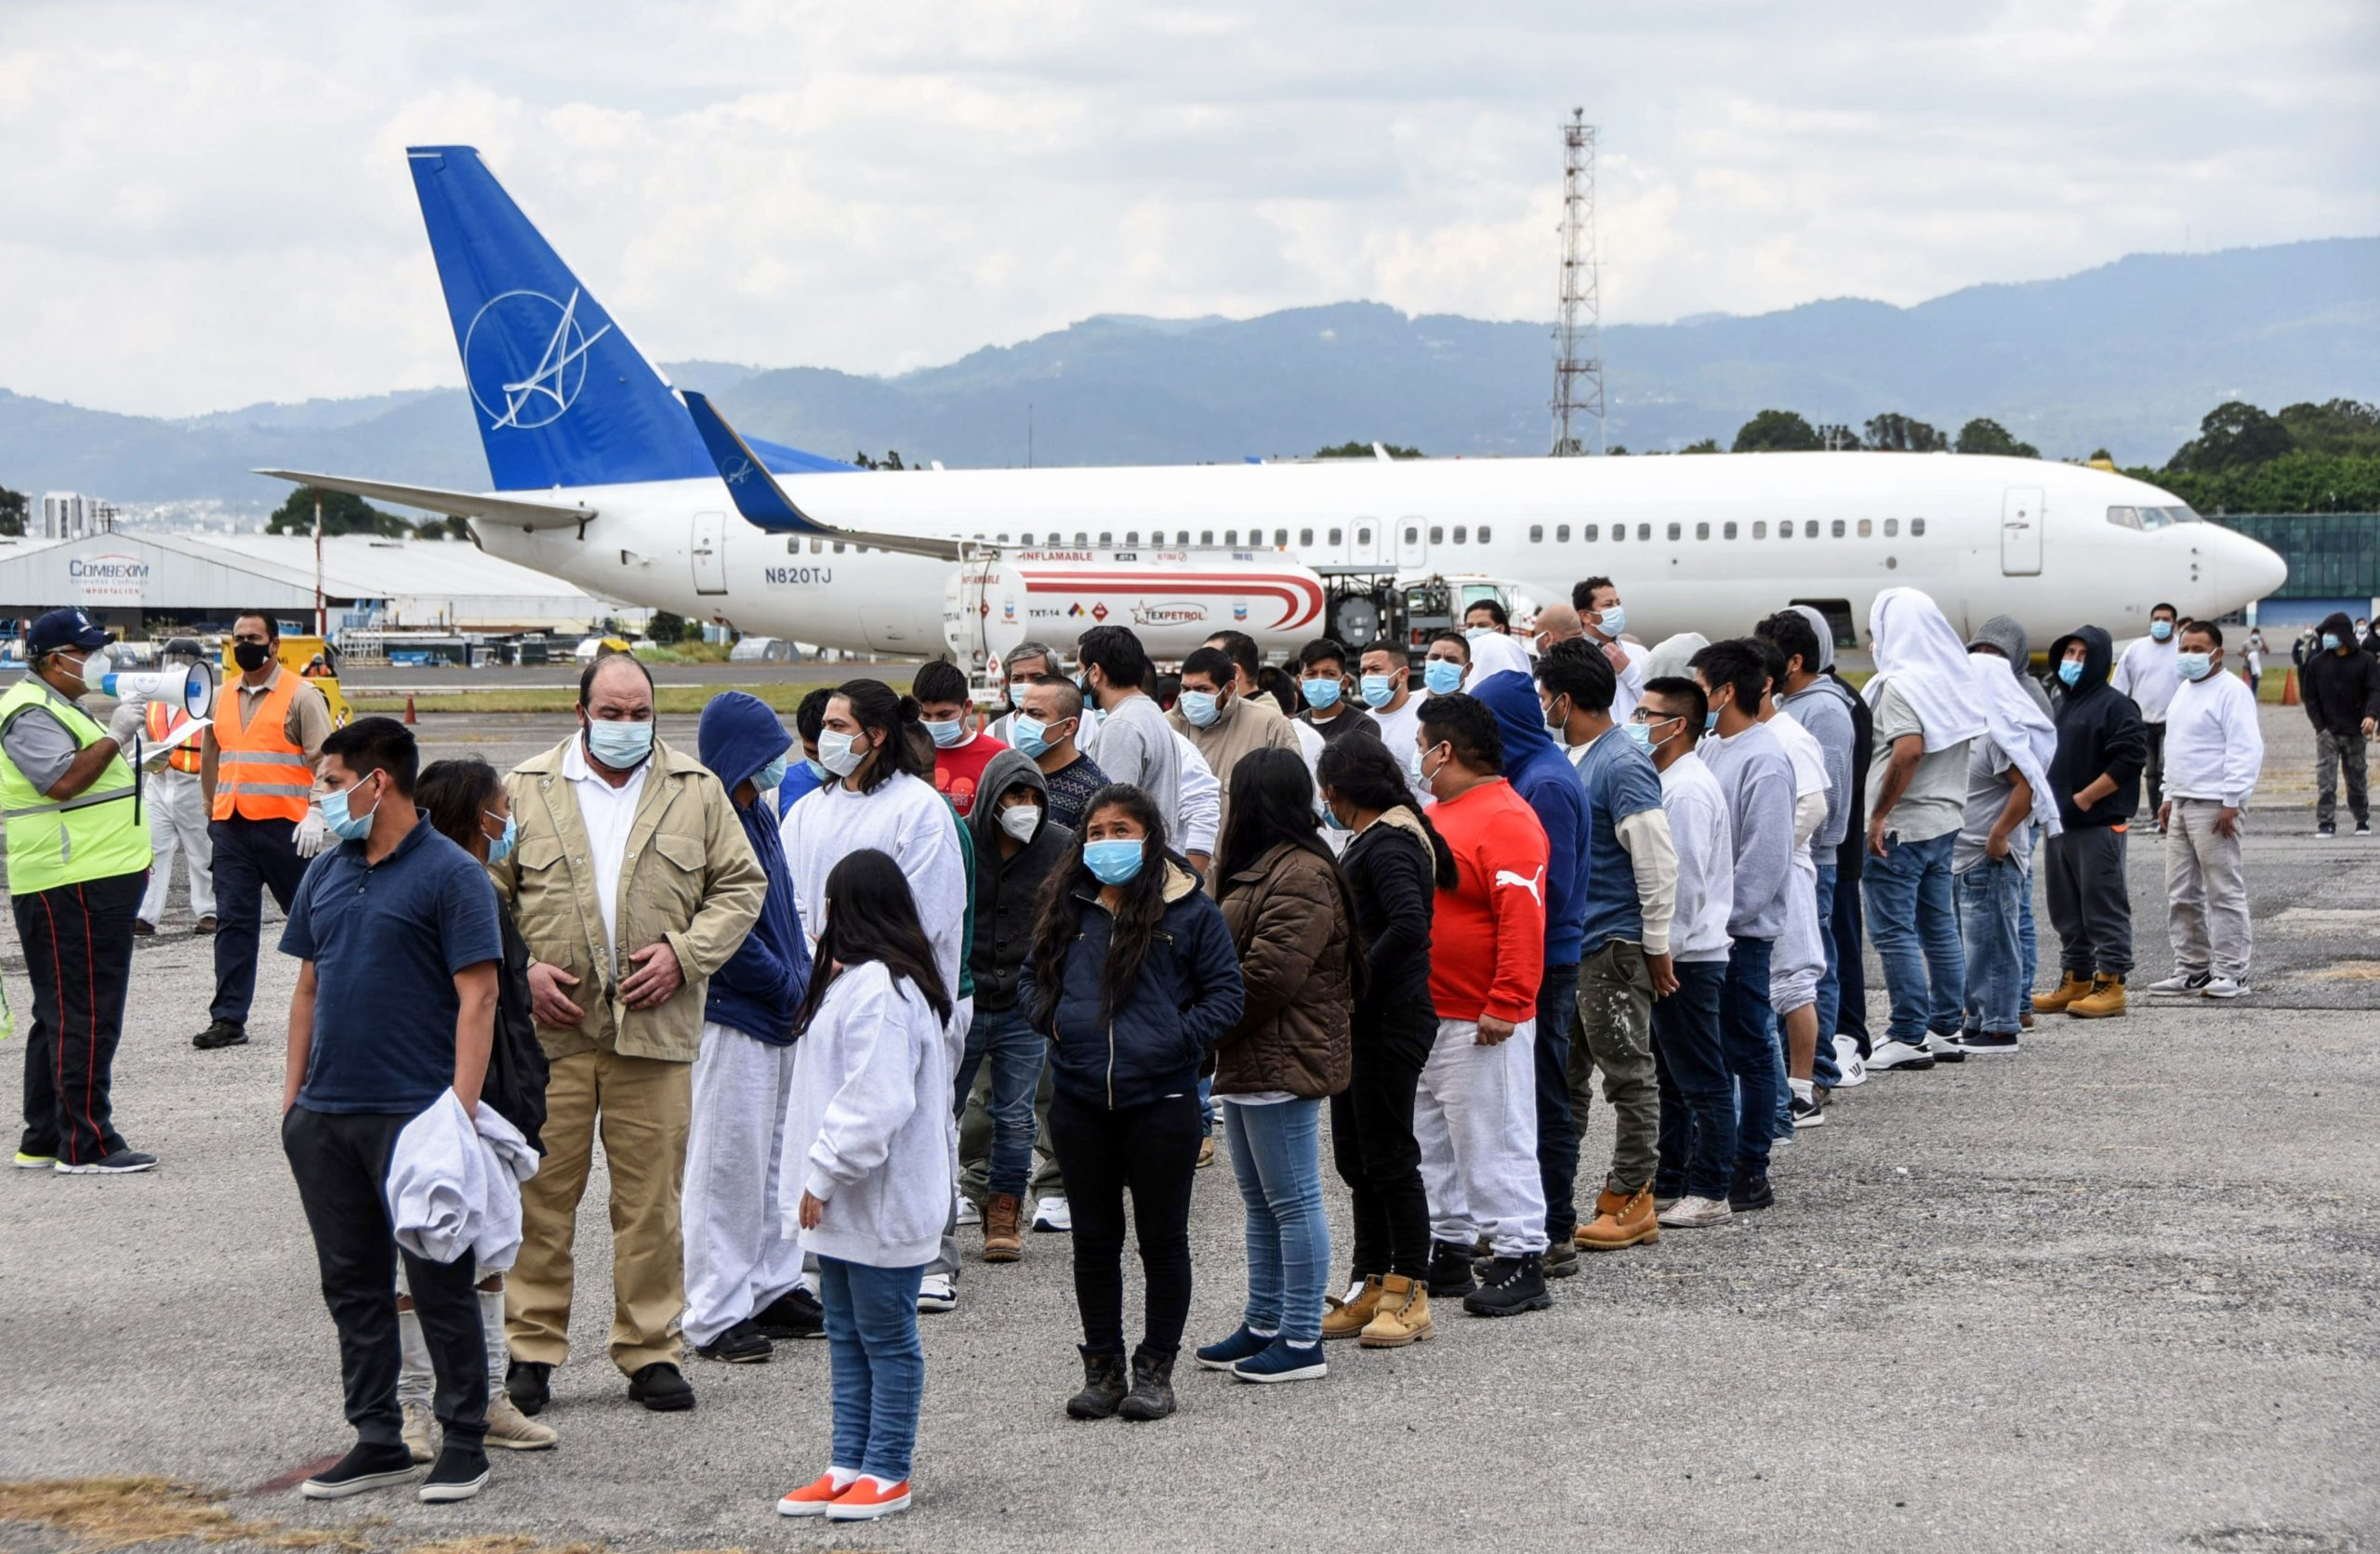 Guatemalan migrants deported from the United States, queue upon their arrival at the Air Force Base in Guatemala City on January 6, 2021. - During 2020, the United States expelled 21.057 Guatemalans by air, a considerably lower number than the 54.599 people deported during 2019, so far the record of deportations, reports Alejandra Mena, spokesman for the Guatemalan State Migration Institute. (Photo by Orlando ESTRADA / AFP) (Photo by ORLANDO ESTRADA/AFP via Getty Images)